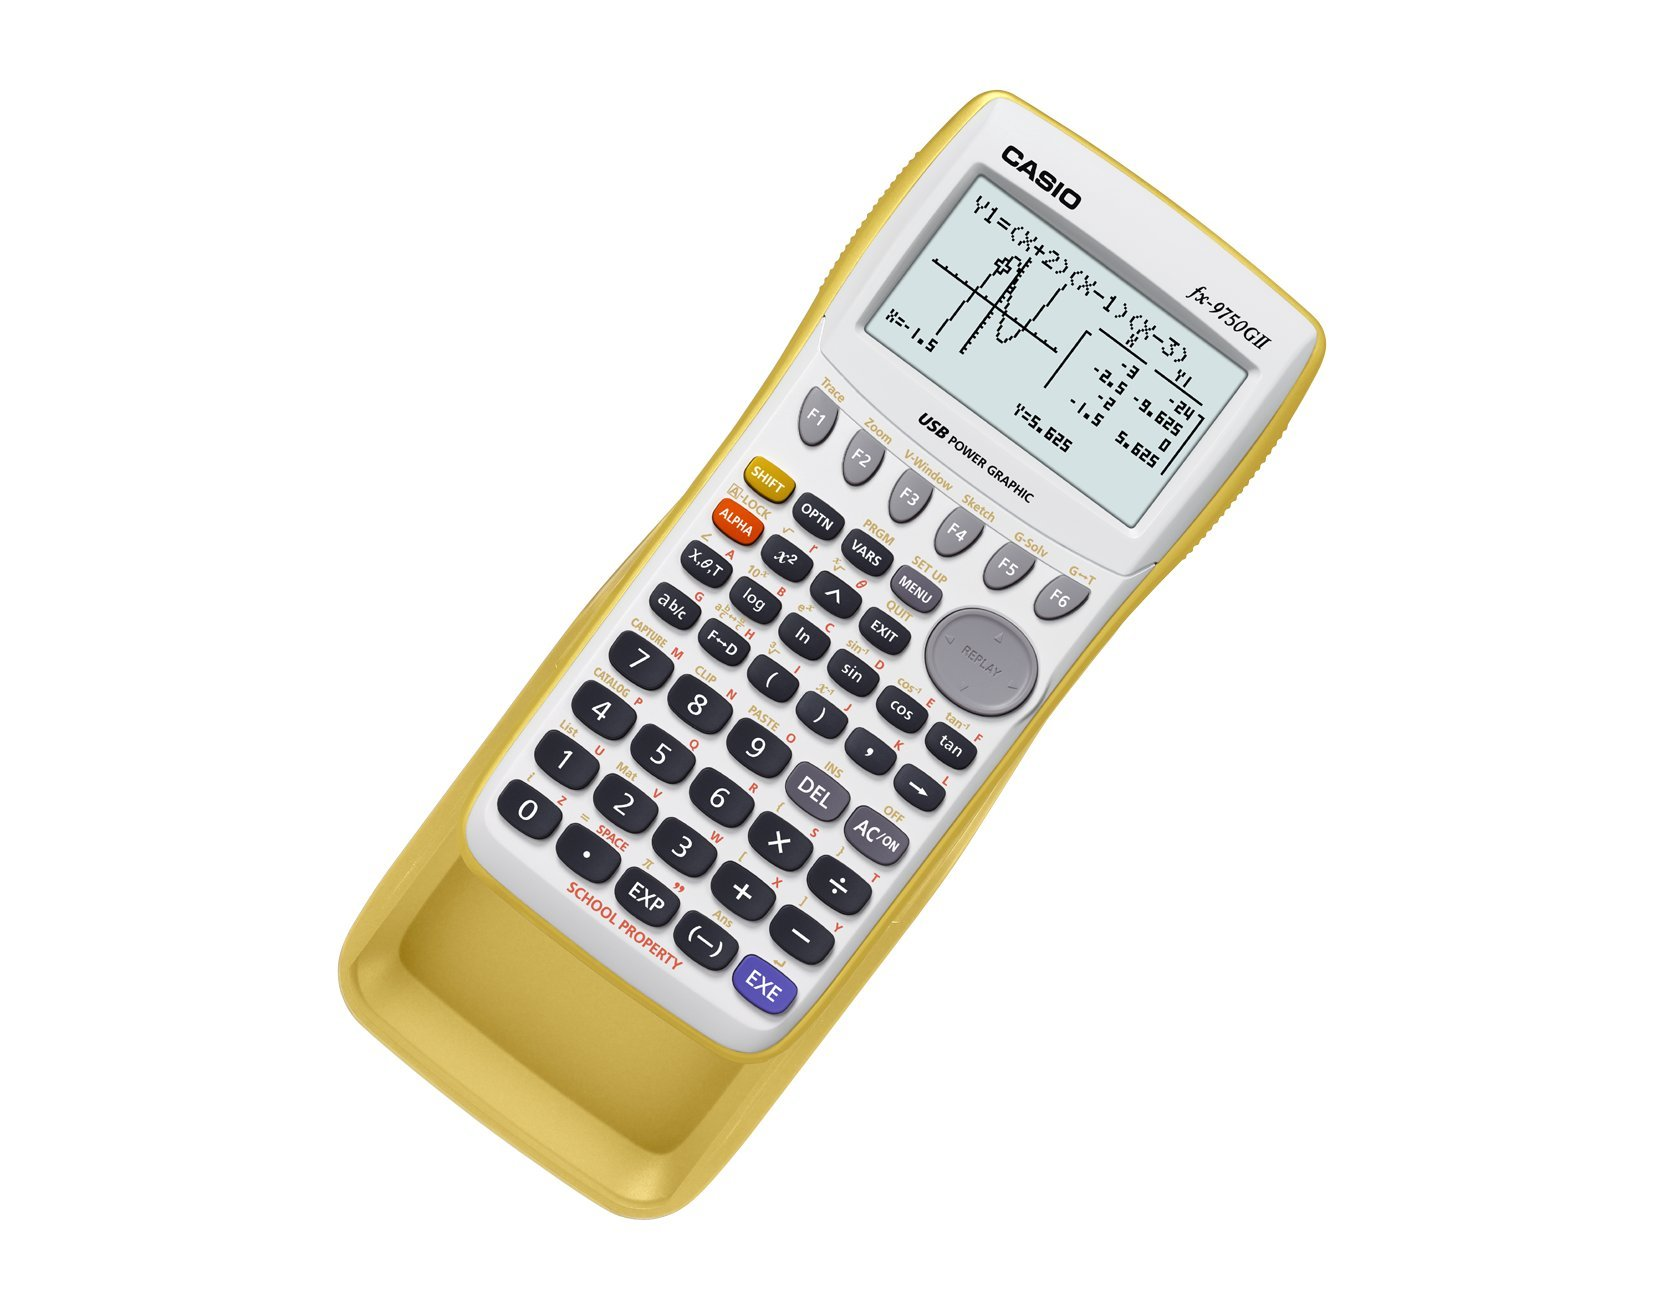 Casio fx-9750GII Graphing Calculator, Yellow